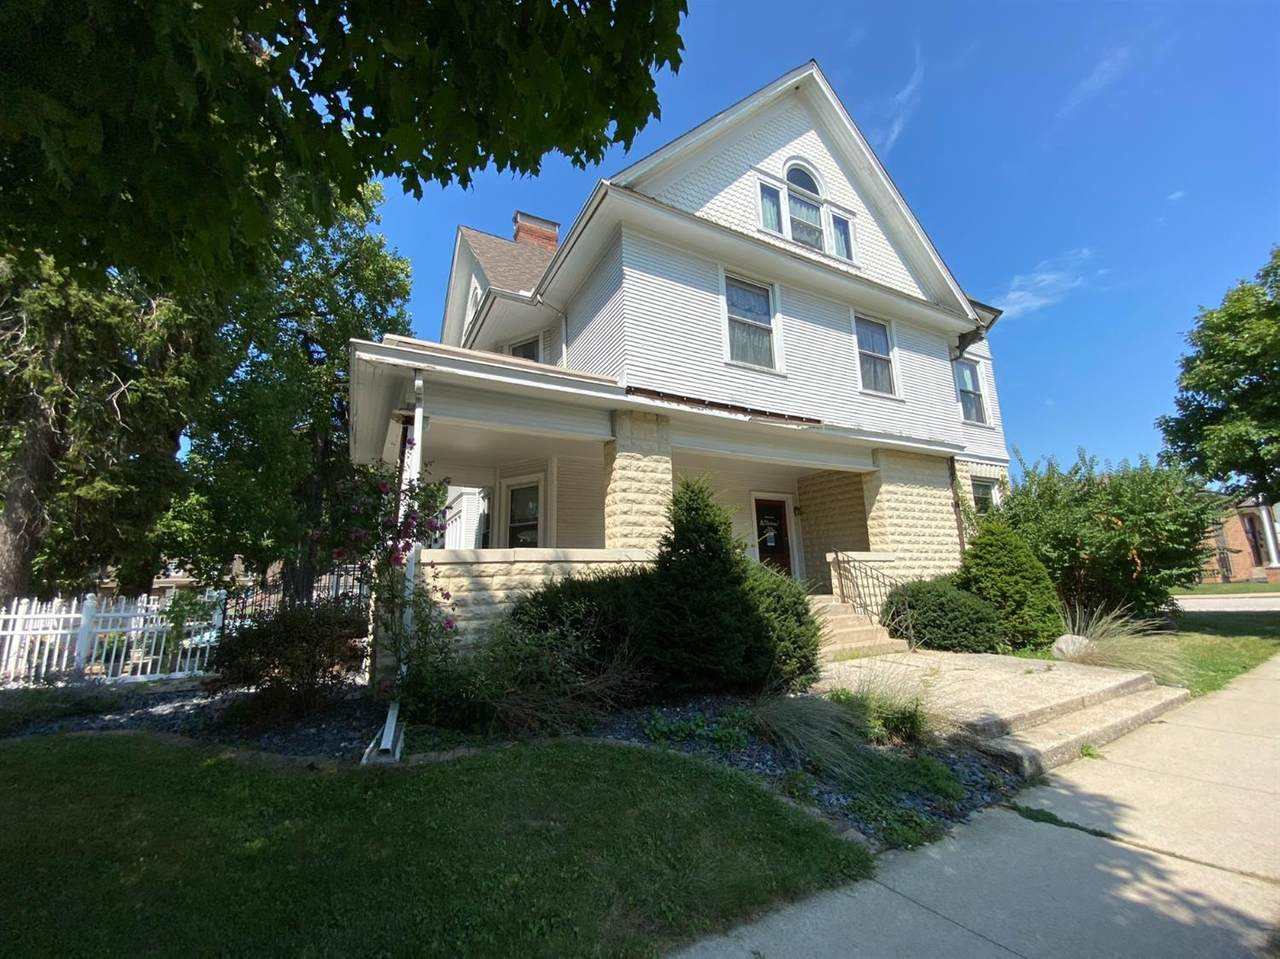 607 Lincolnway - Photo 1